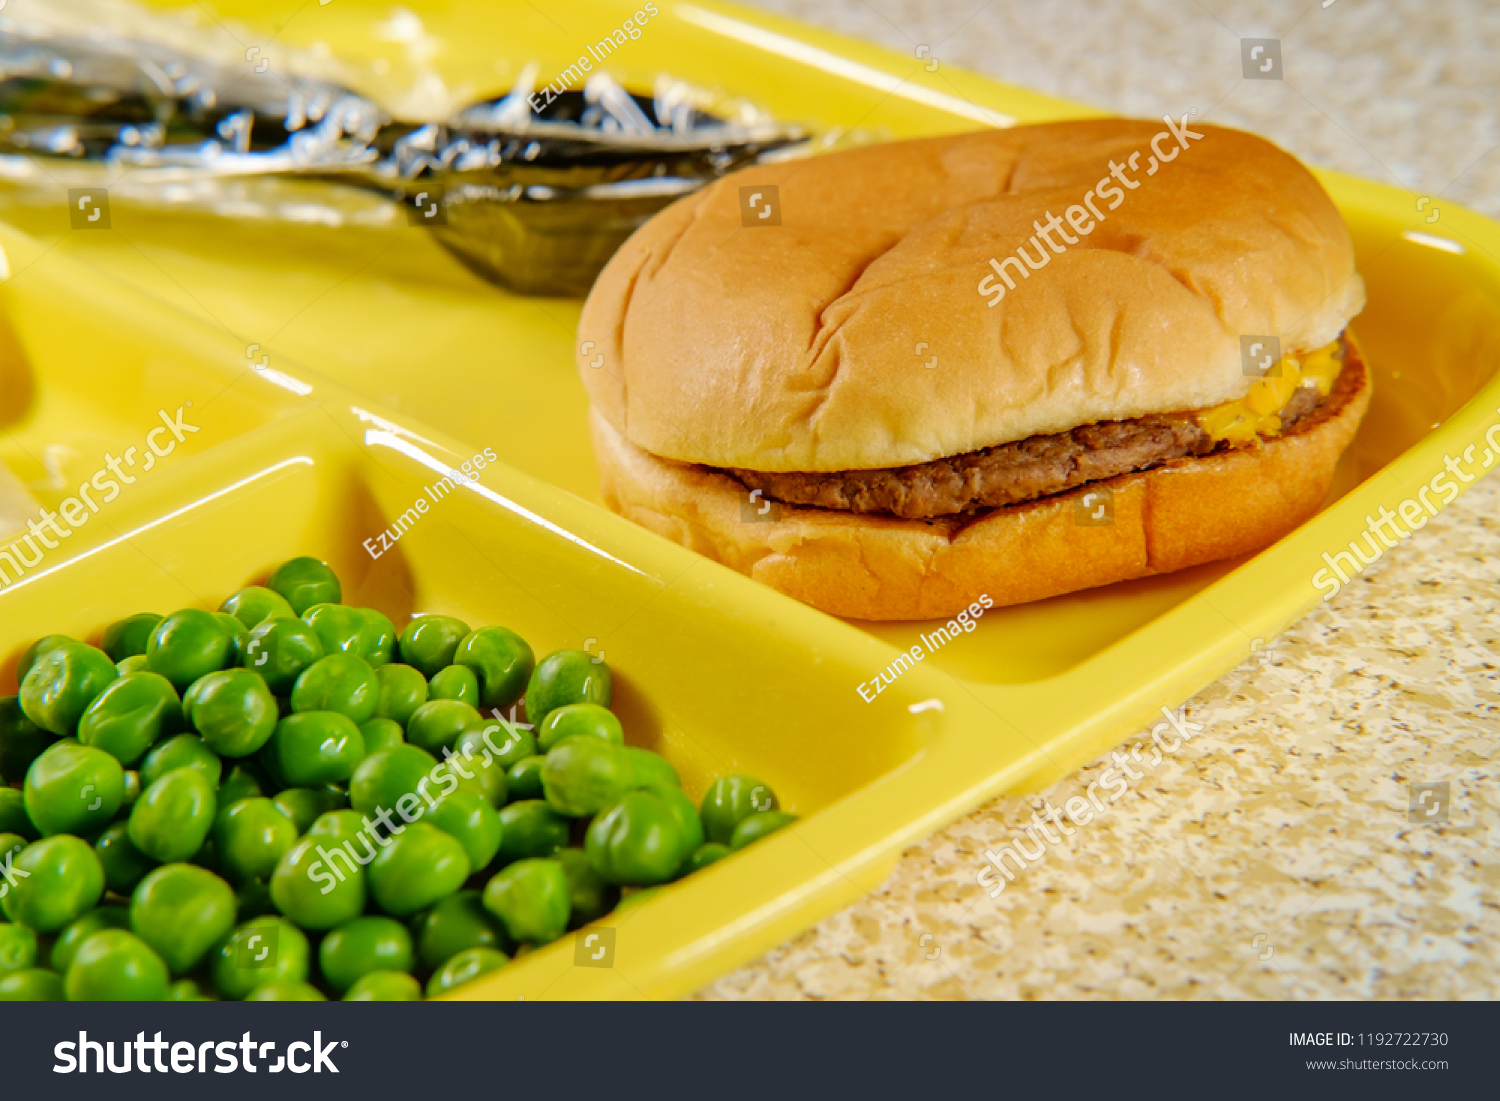 Elementary School Lunch Cheeseburger Mashed Potatoes Stock